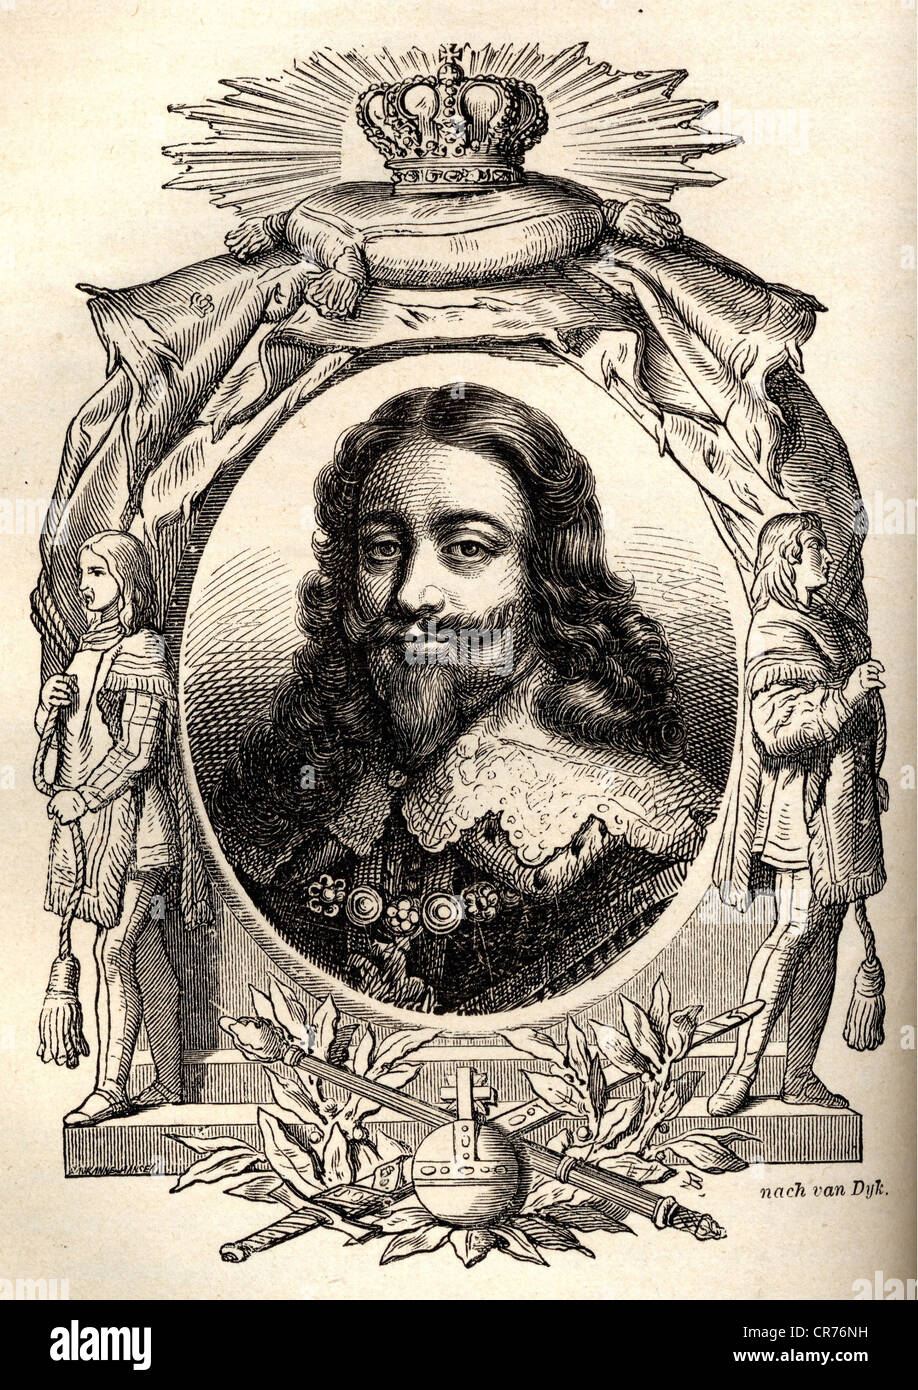 Charles I., King of England, 1625 - 1649, born 1600, executed 1649, portrait, steel engraving  from 'The history - Stock Image